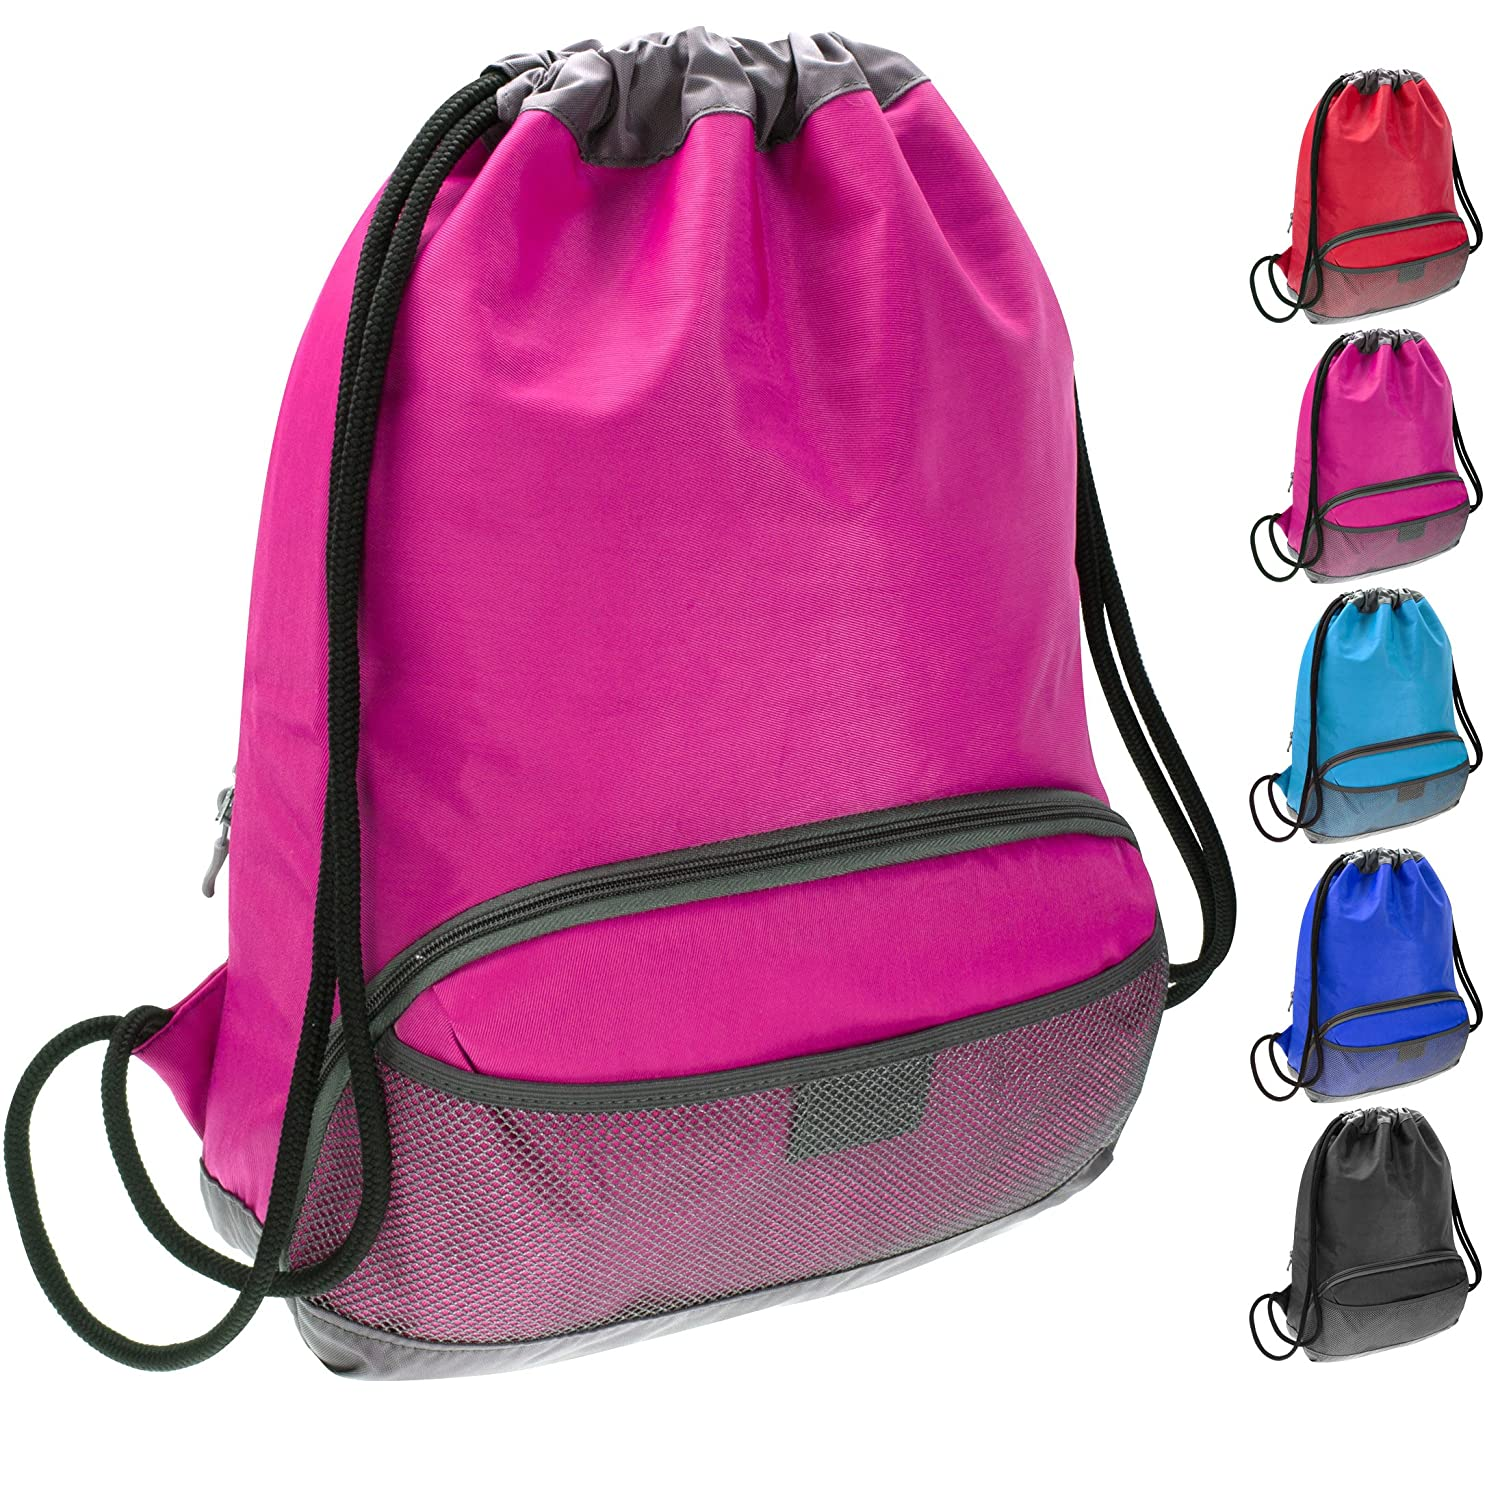 chic ButterFox Waterproof Fabric Swim PE Gym Sports Bag Drawstring Sackpack  Backpack for Kids 4e45f58feb818